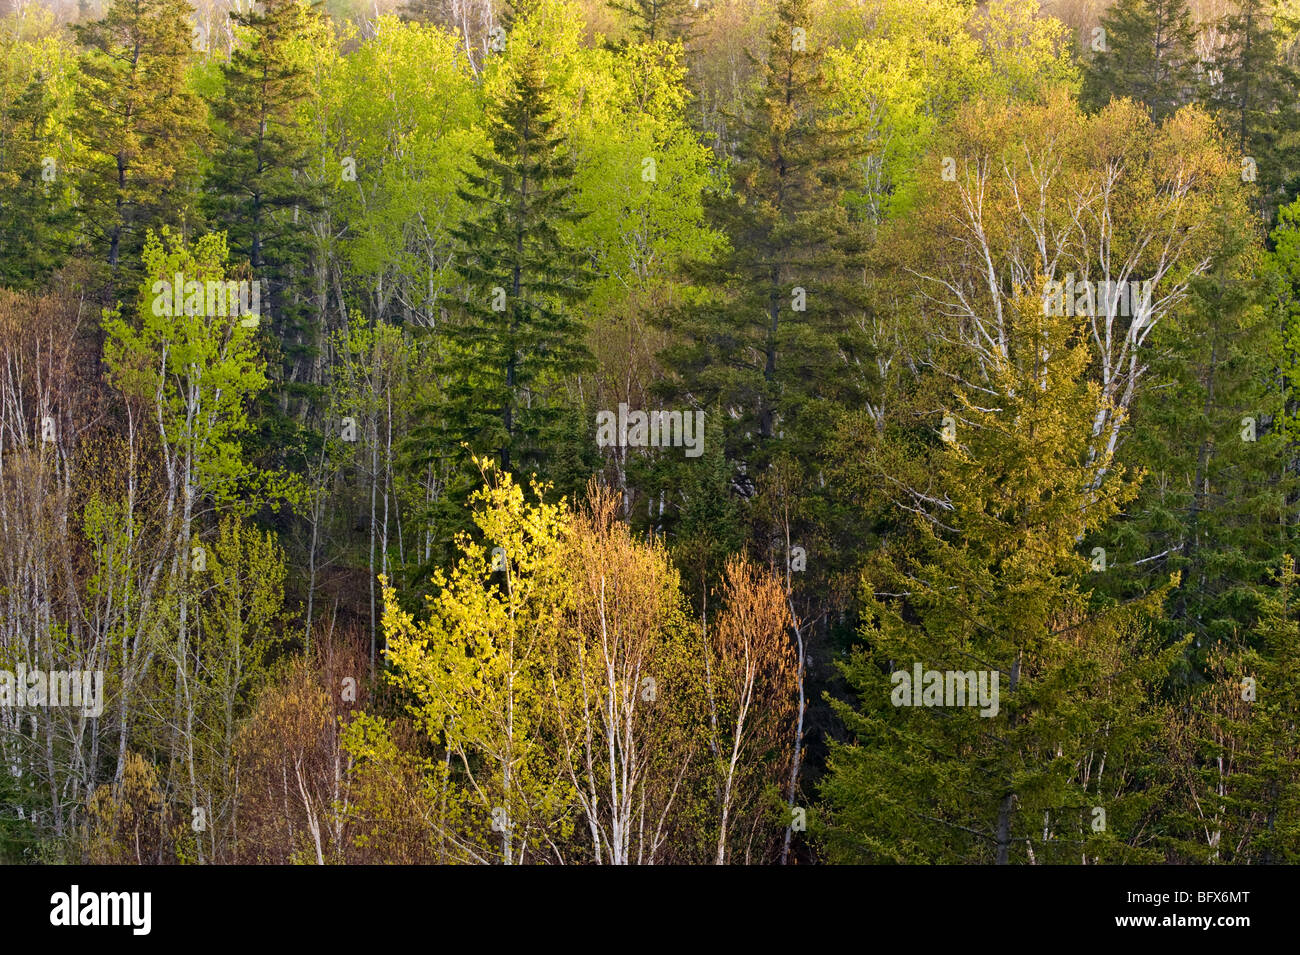 Emerging Spring foliage in deciduous trees in mixed forest on hillside, Greater Sudbury, Ontario, Canada - Stock Image